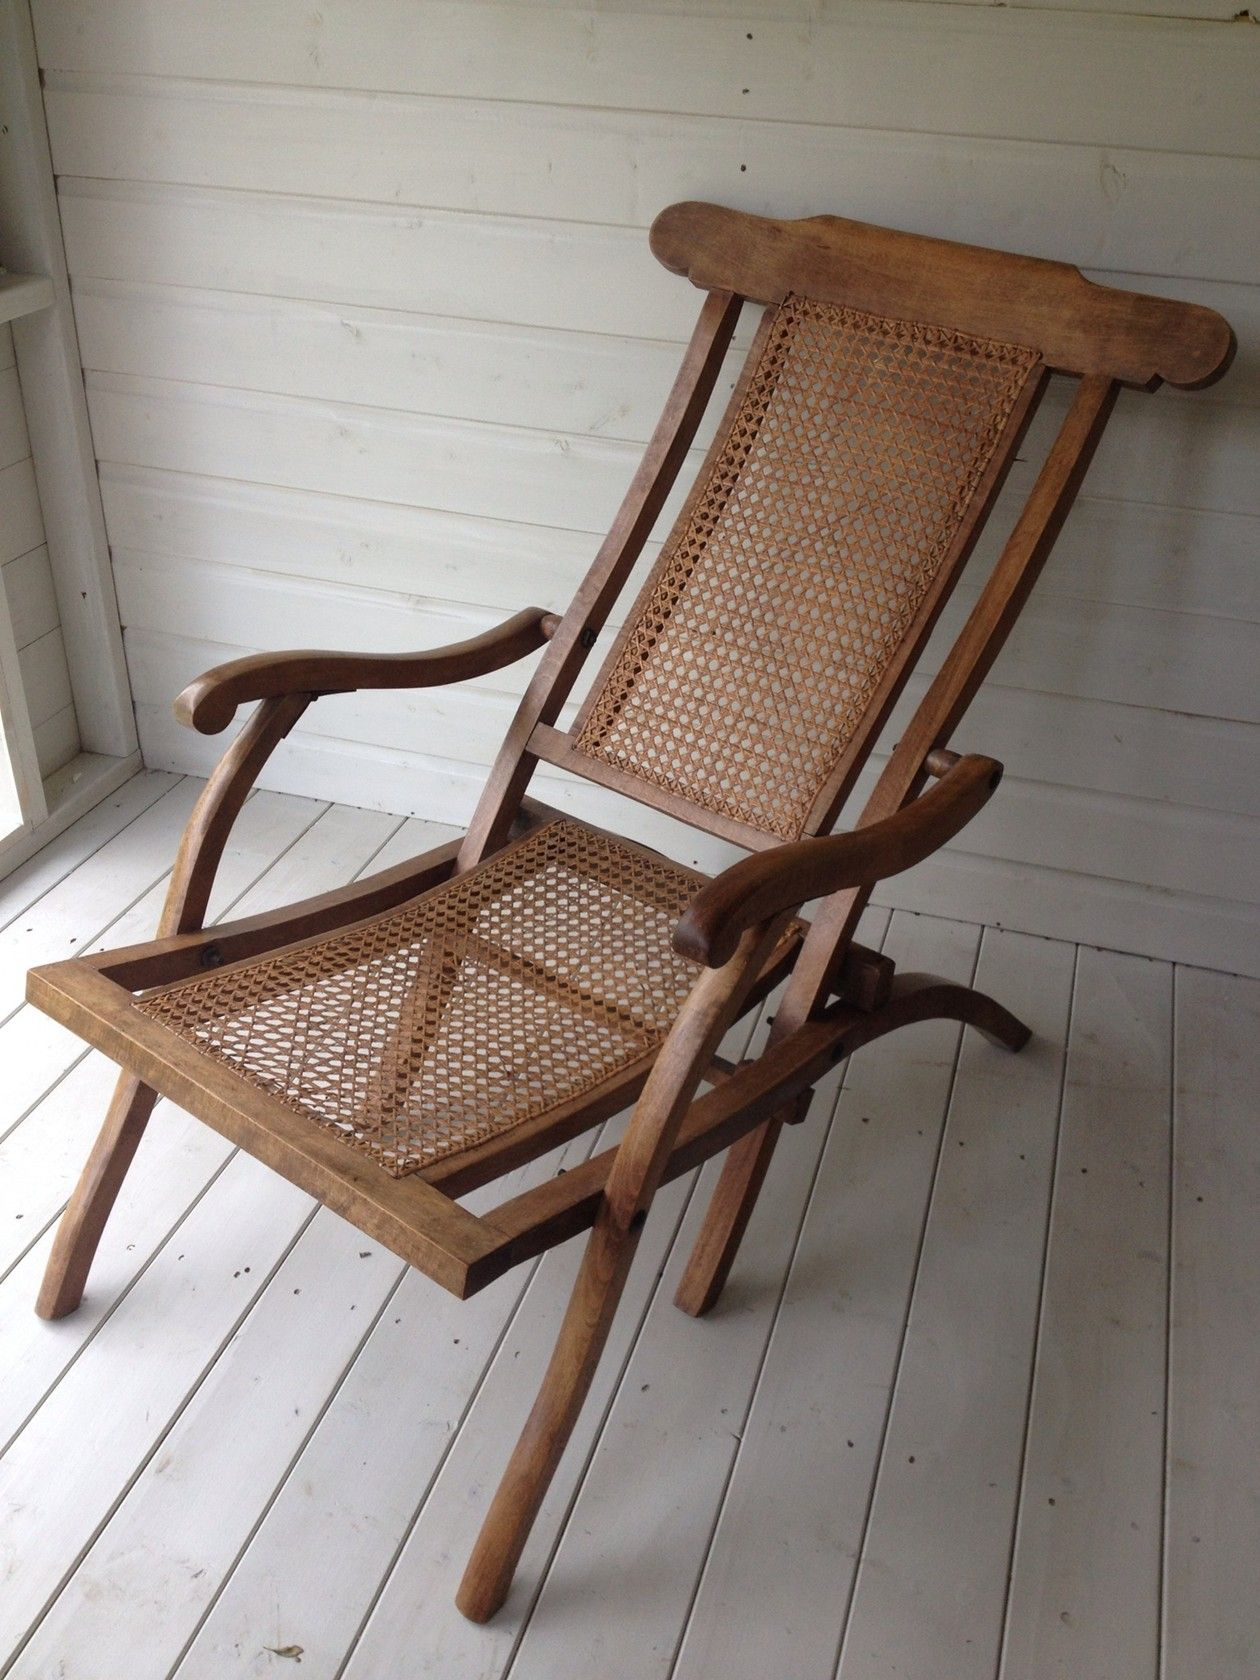 Admirable Antique Wooden Rattan Folding Steamer Chair Collection Machost Co Dining Chair Design Ideas Machostcouk